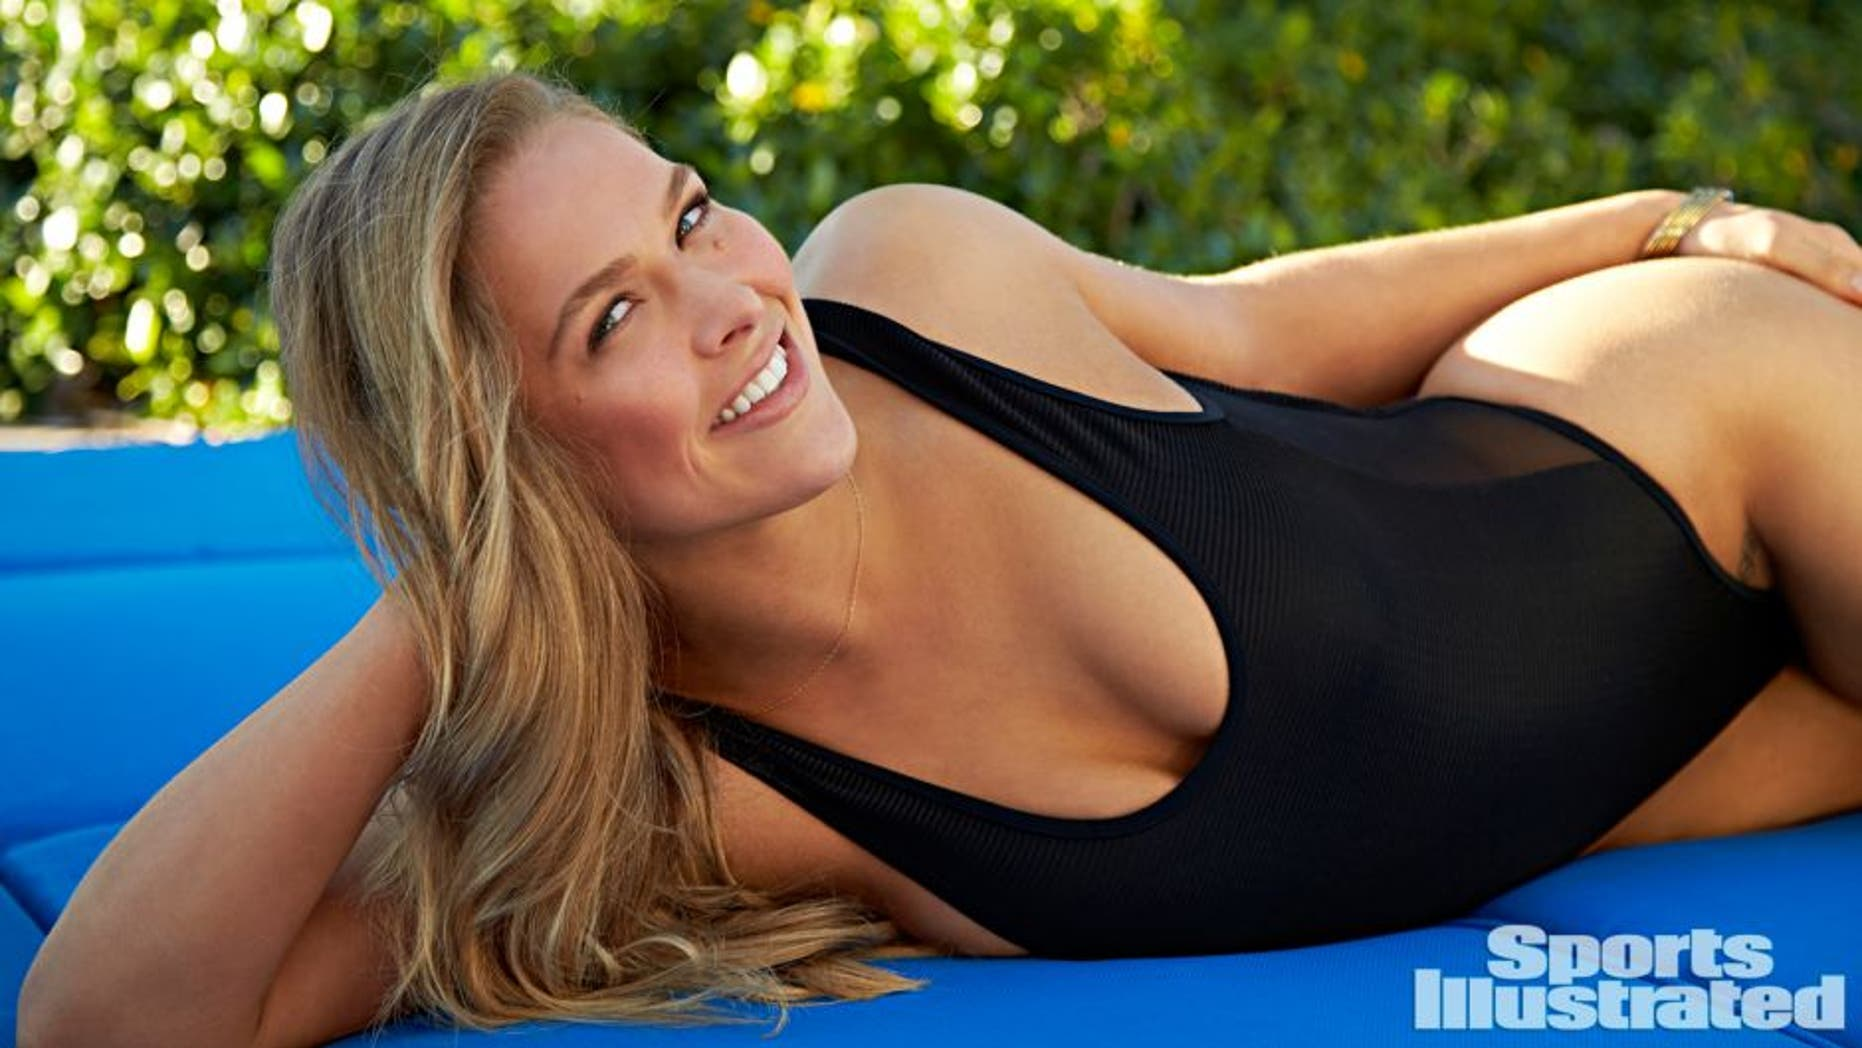 """***NORTH AMERICA usage only, ending February 28, 2015; credit: Walter Iooss Jr./Sports Illustrated; caption must include the words """"on sale now."""" NO INTERNATIONAL USE.*** Swimsuit: 2015 Issue: Portrait of Ronda Rousey during photo shoot at South Seas Island Resort. Swimsuit by Tyler Rose Swimwear. Captiva Island, FL 11/11/2014 CREDIT: Walter Iooss Jr. SetNumber: X158908 TK1"""